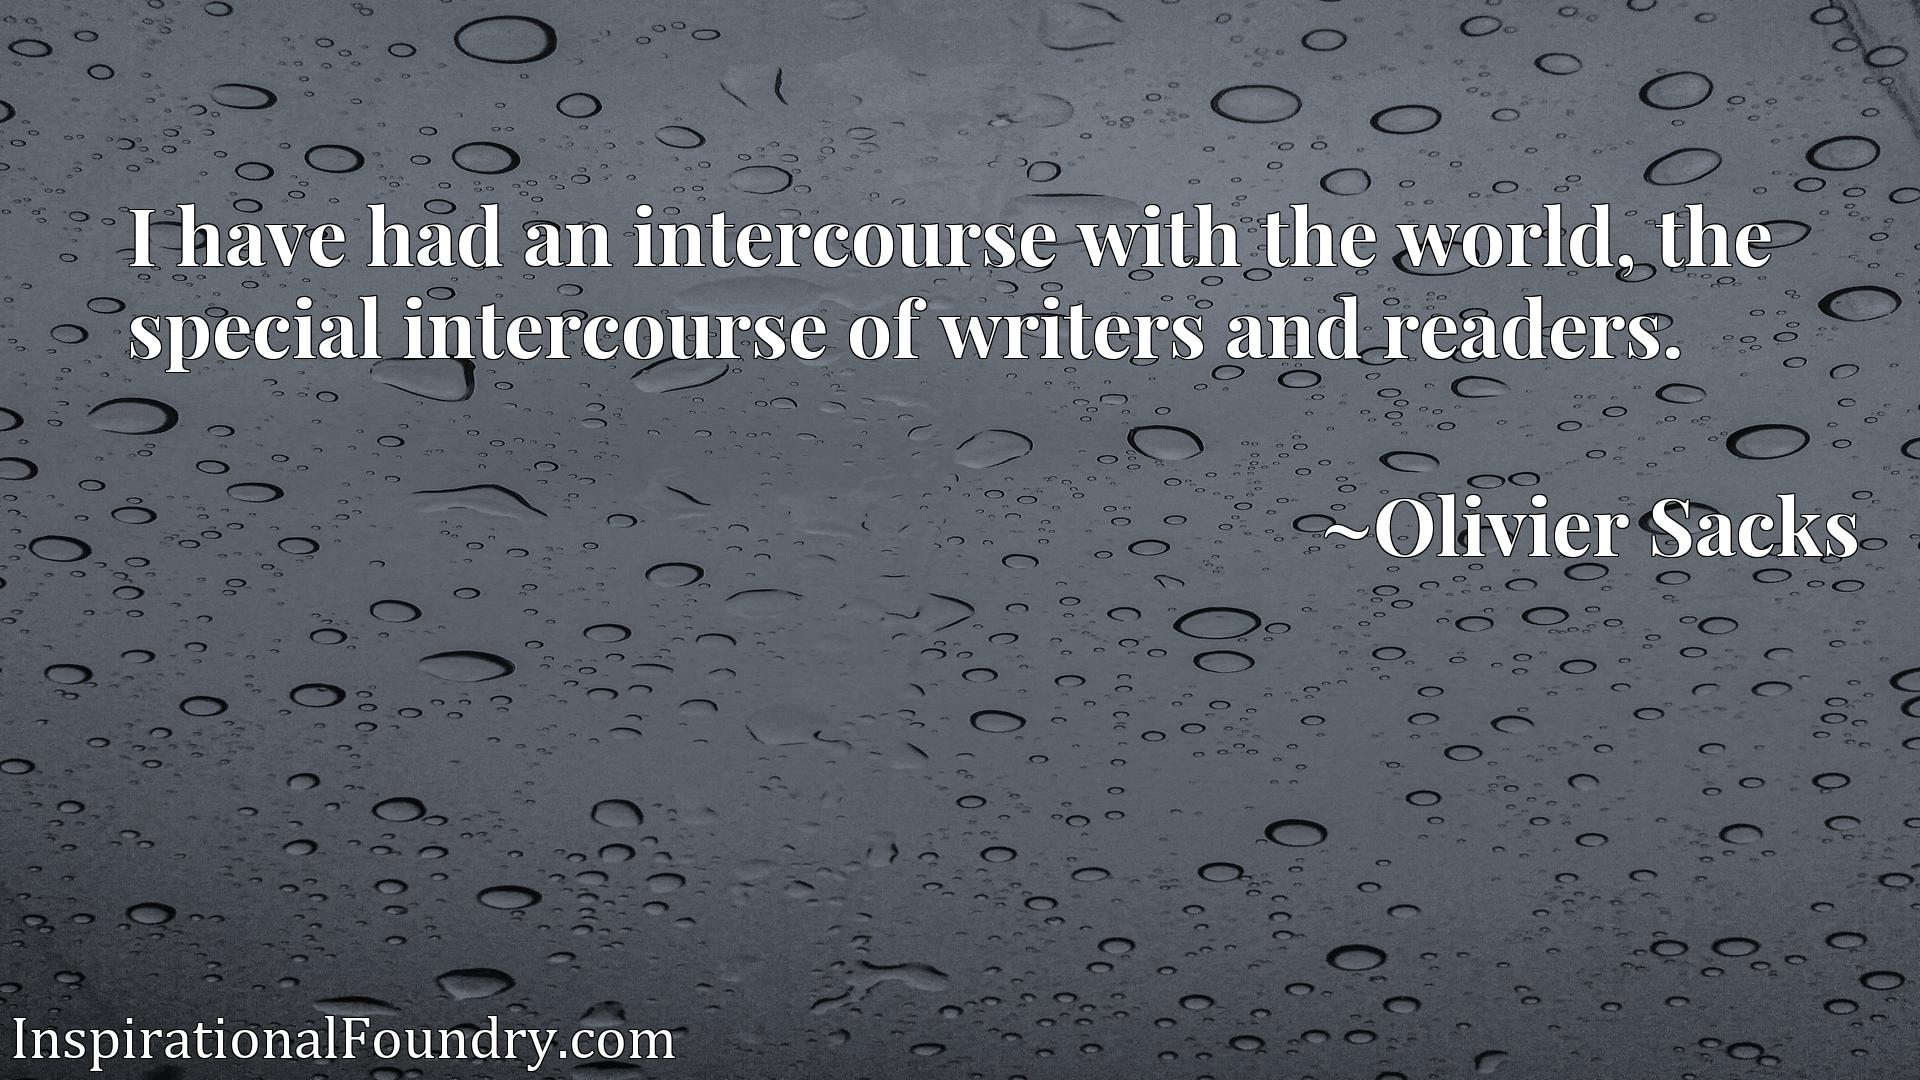 I have had an intercourse with the world, the special intercourse of writers and readers.